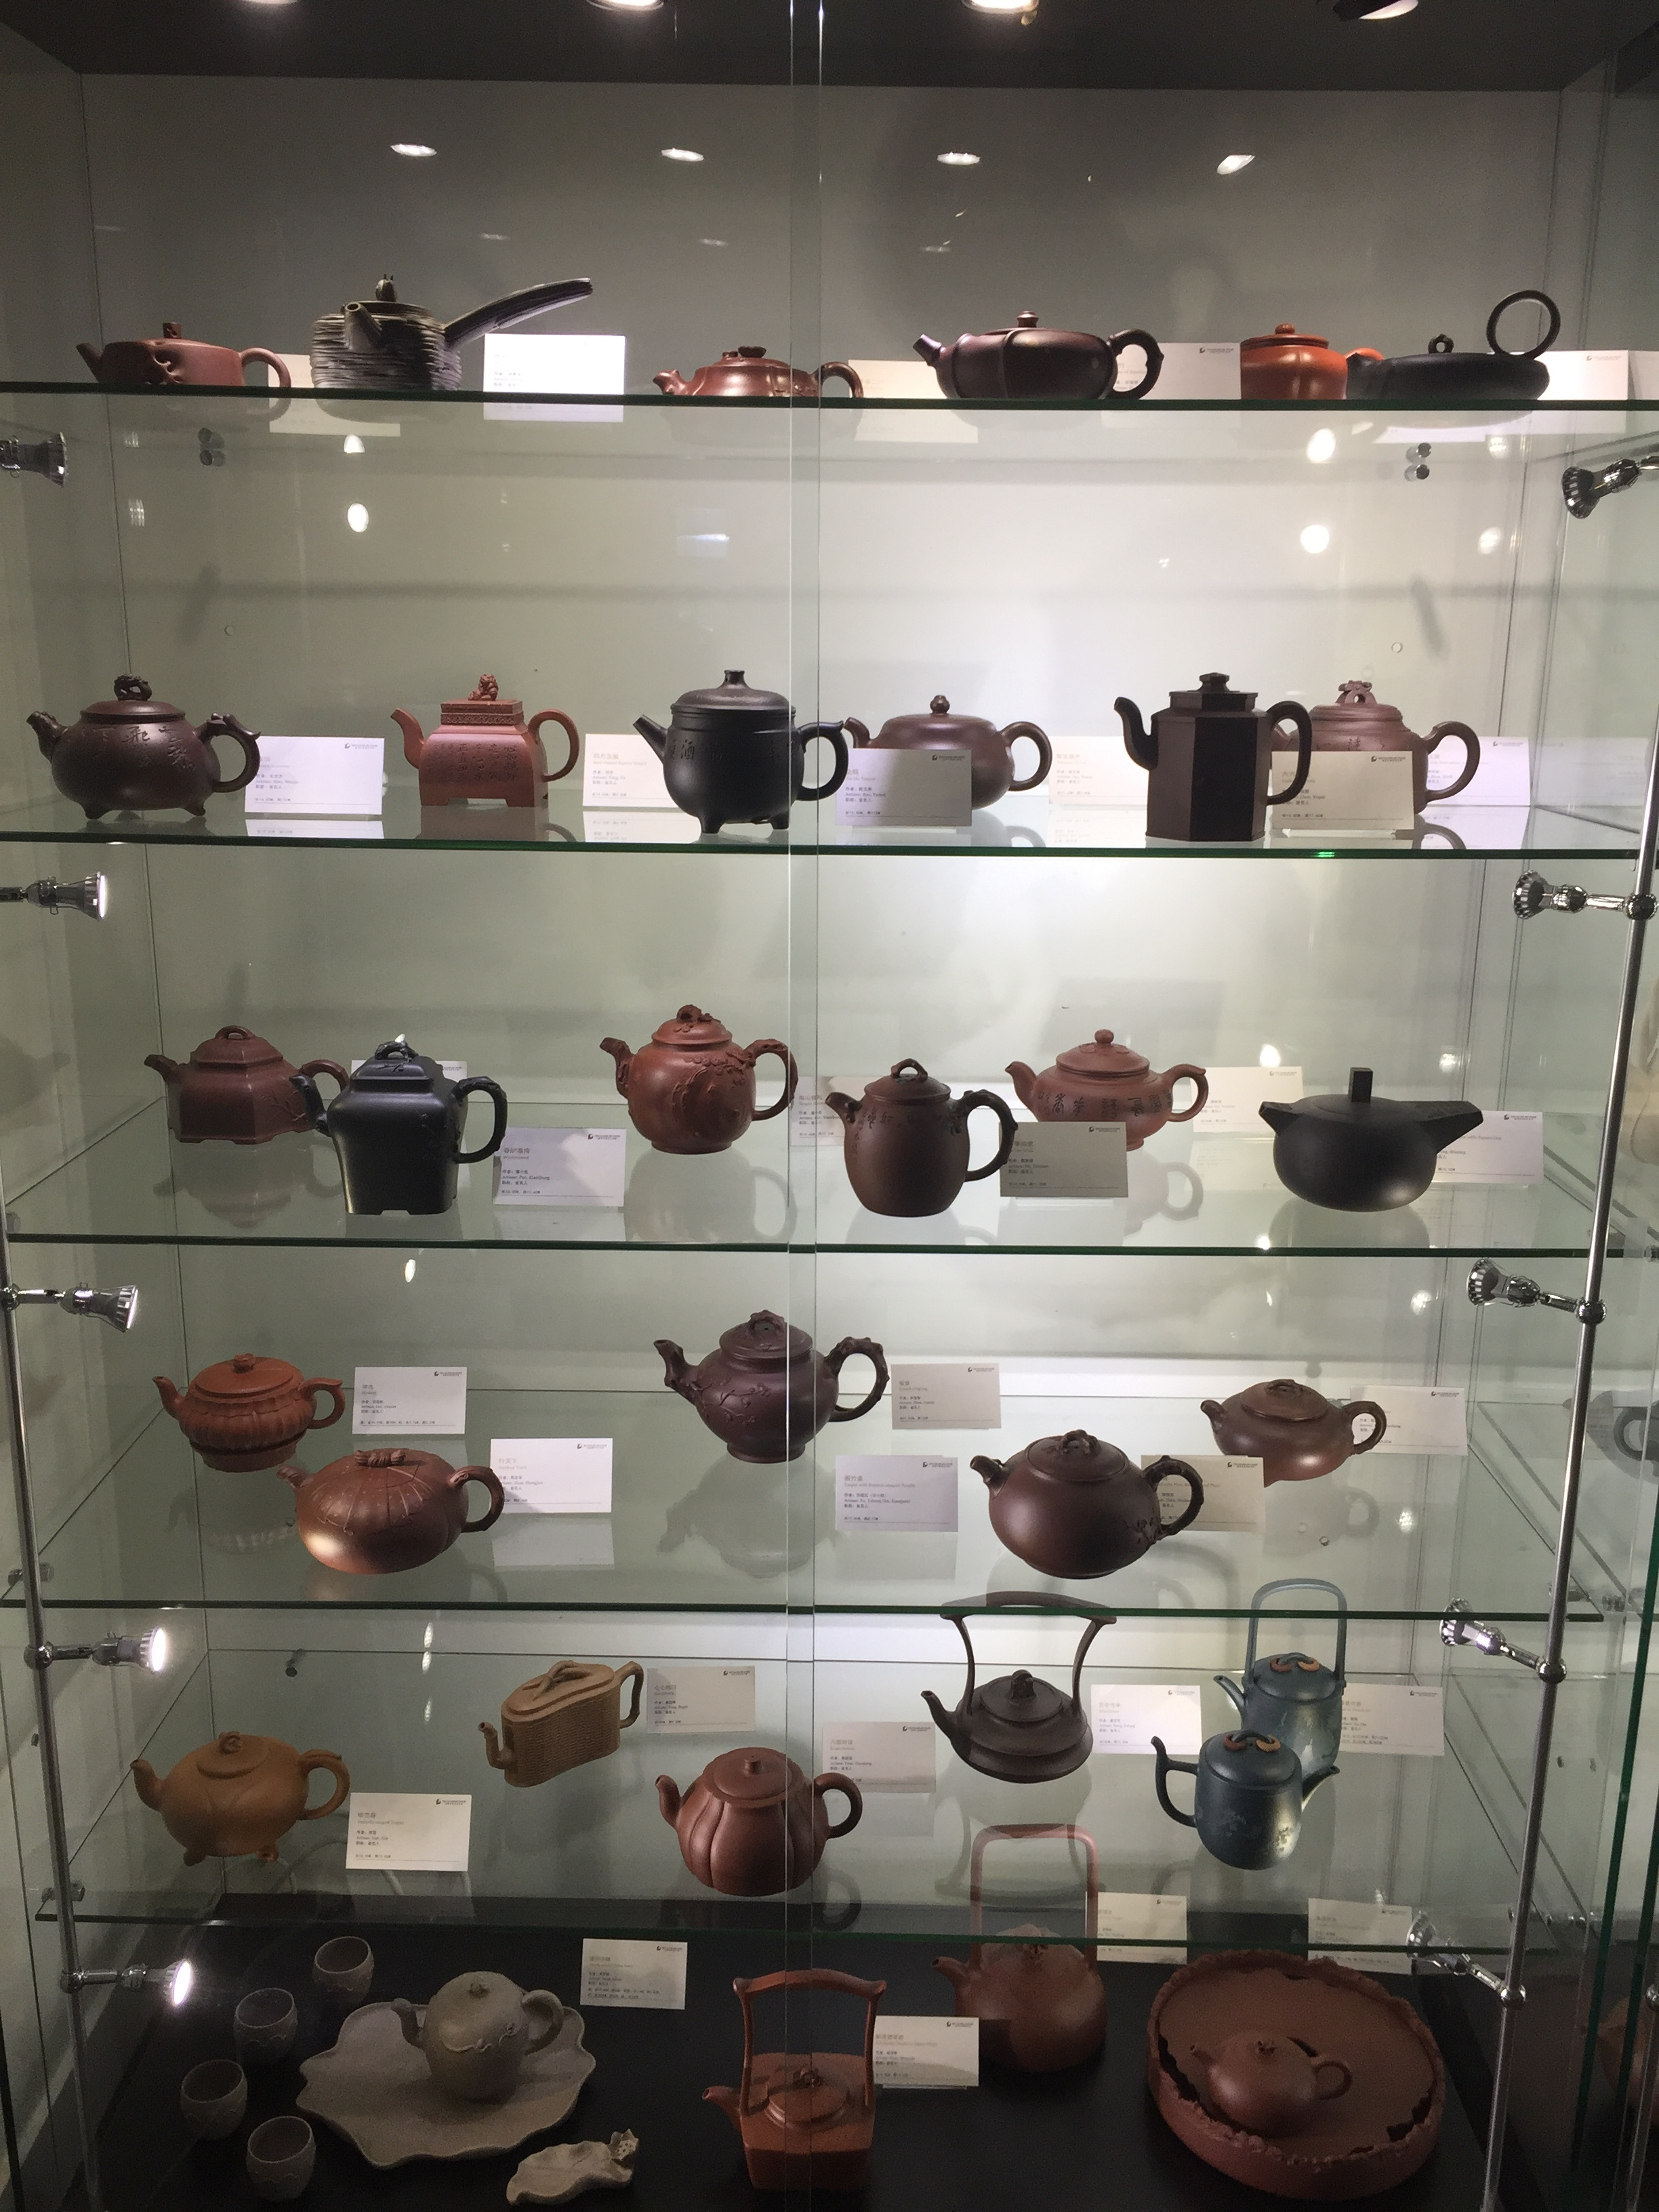 One of the many showcases containing yixing teapots.